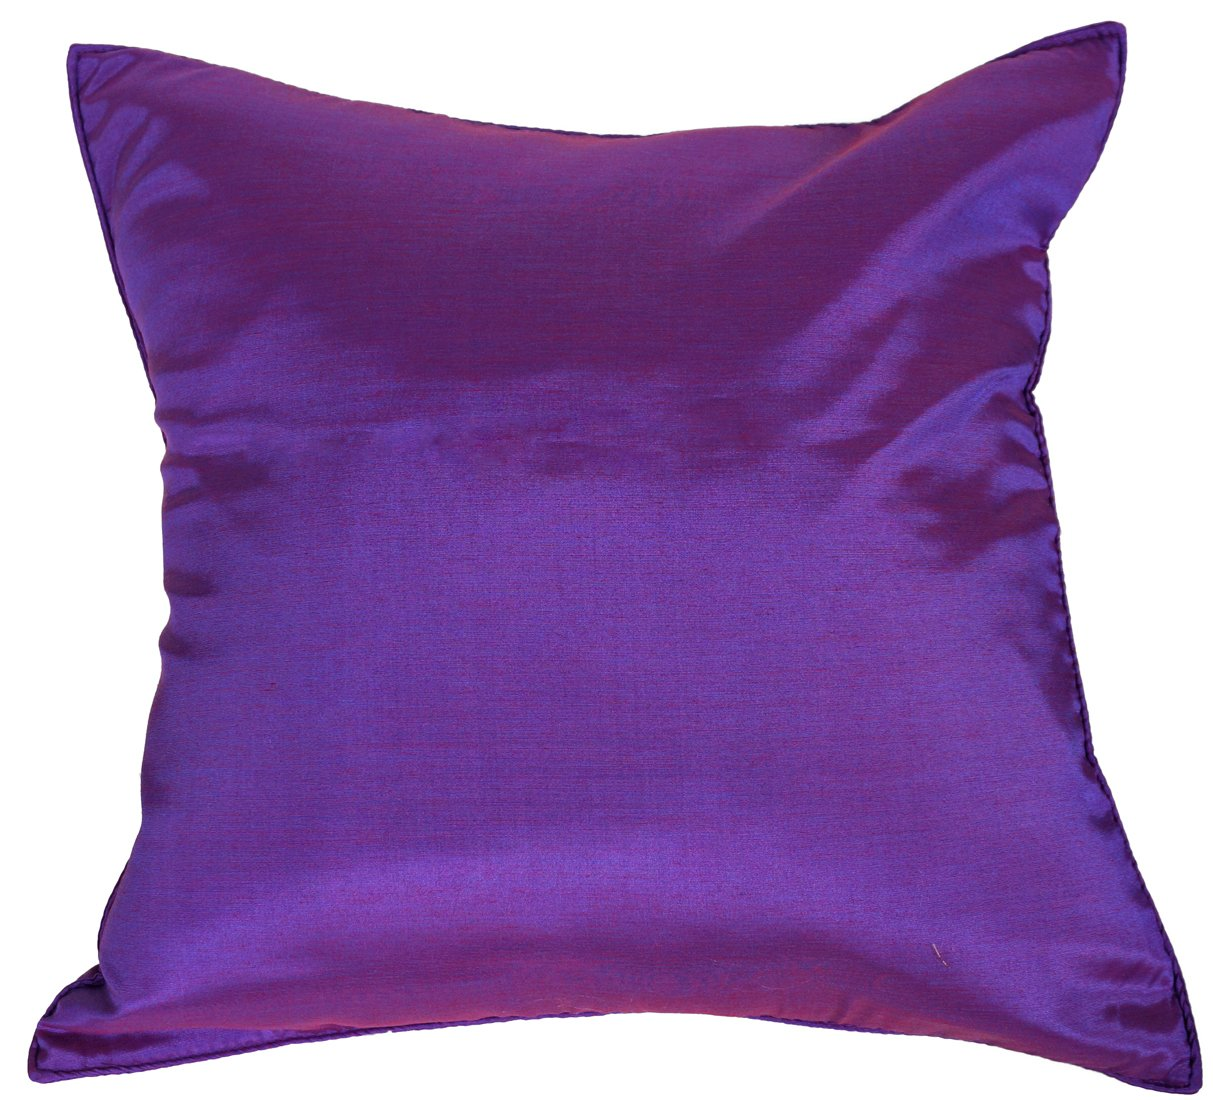 Purple Decorative Pillow : Purple Silk Throw Decorative Pillow Cases for Sofa Couch 16x16